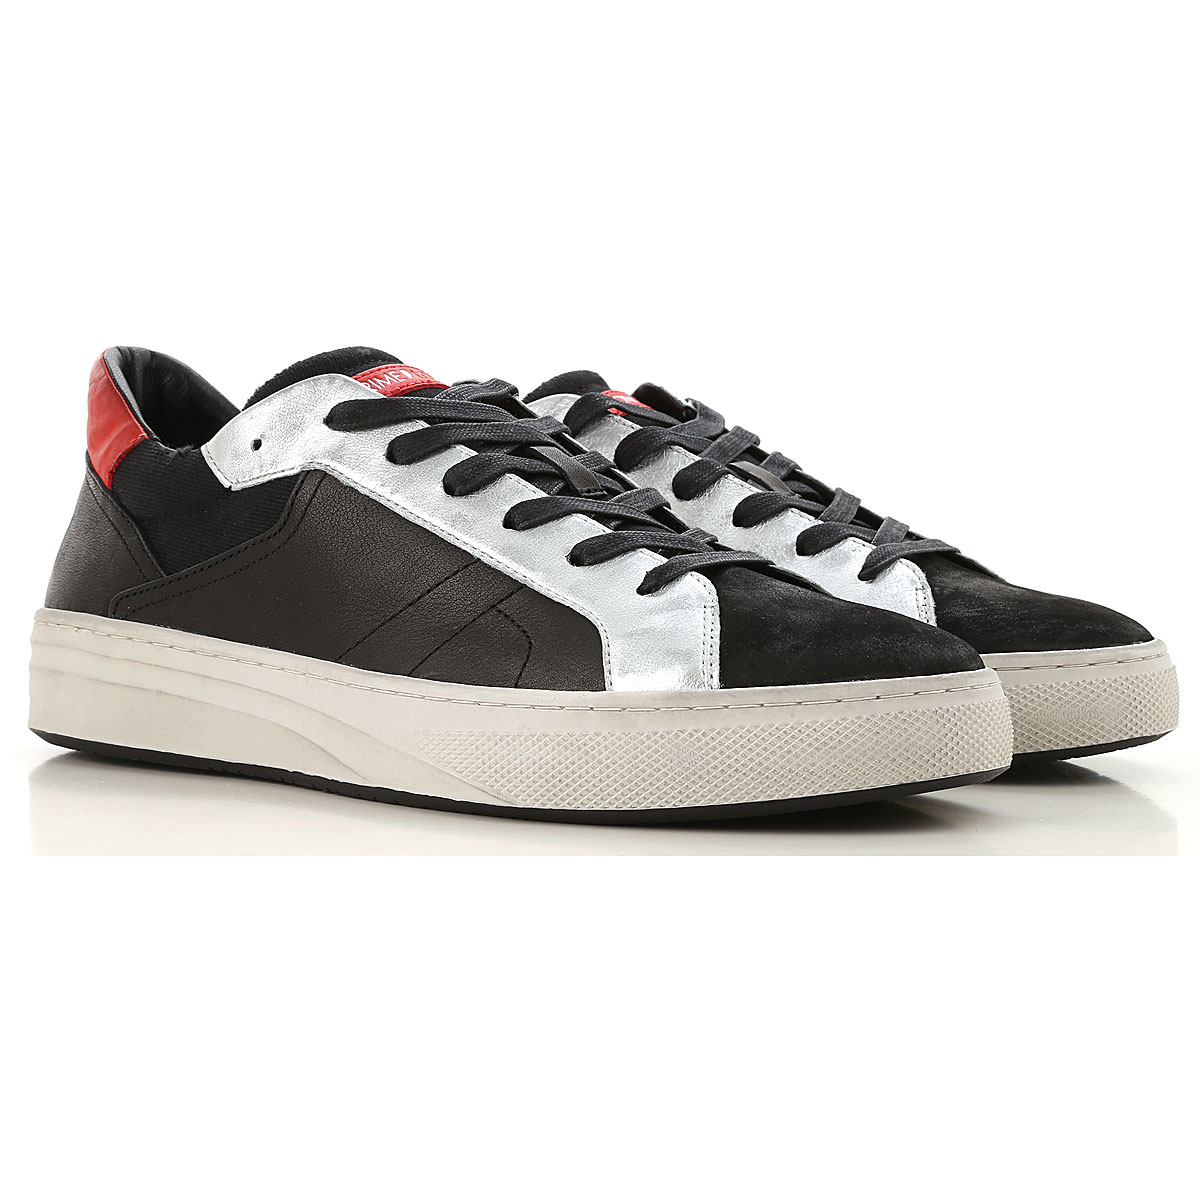 Image of Crime Sneakers for Men, Black, Leather, 2017, 10 11.5 8 9